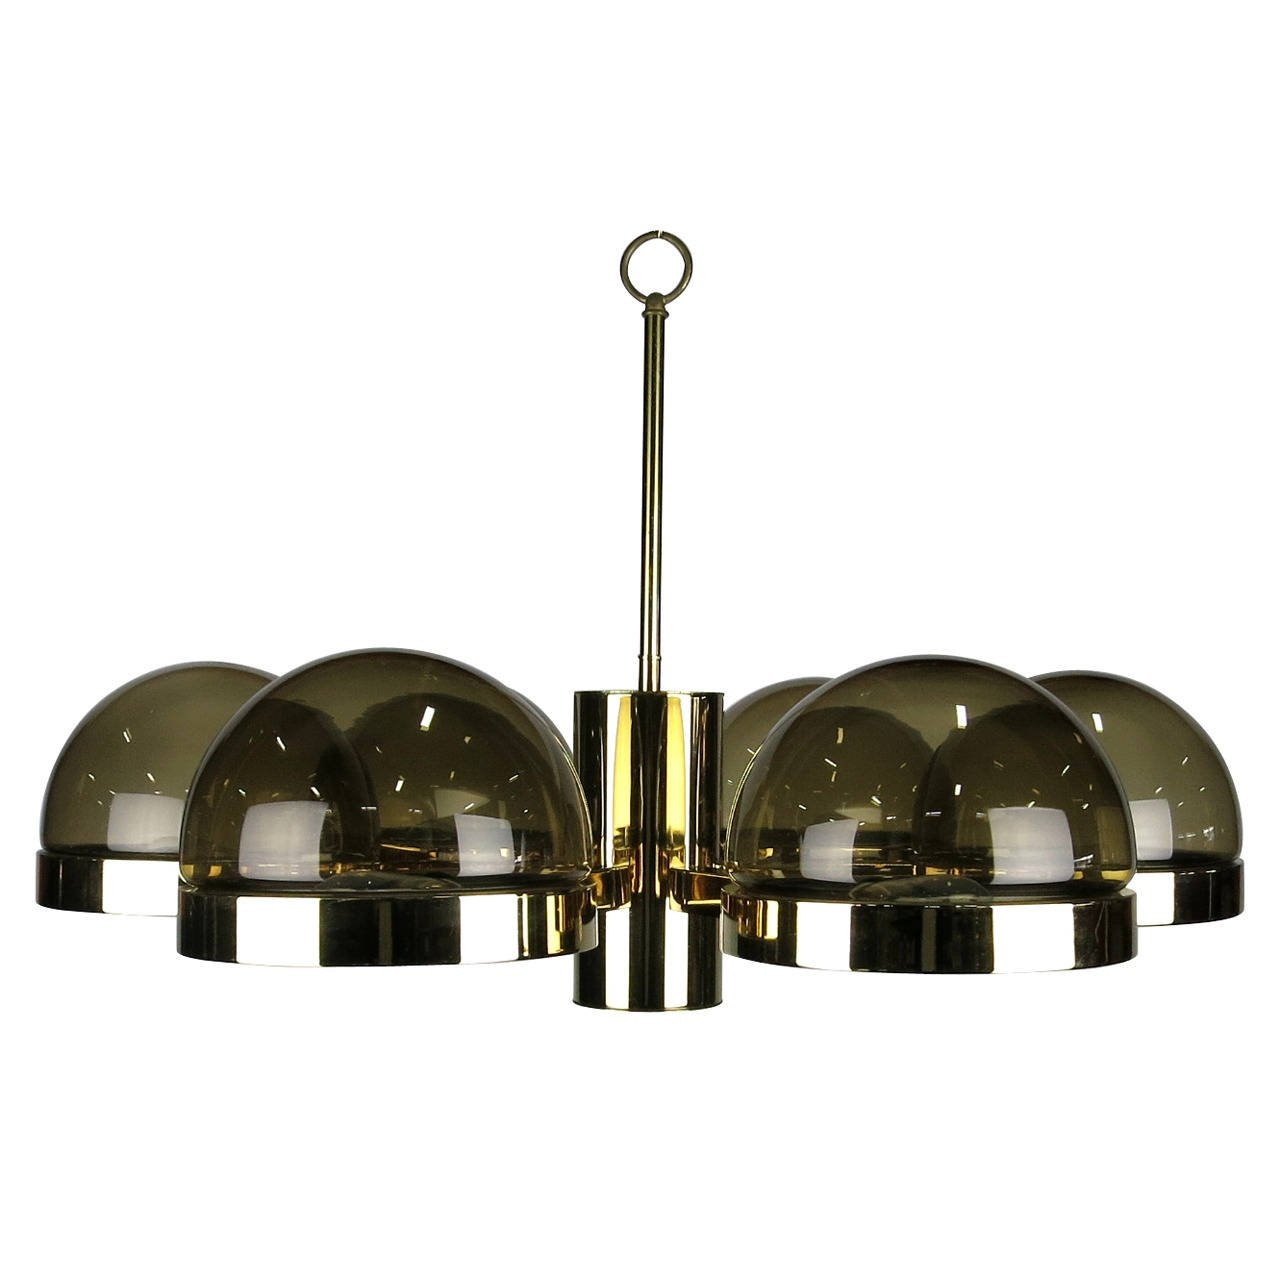 Large 1970s Mod Brass And Smoked Glass Chandelier For Sale At 1stdibs For Smoked Glass Chandelier (Image 9 of 15)